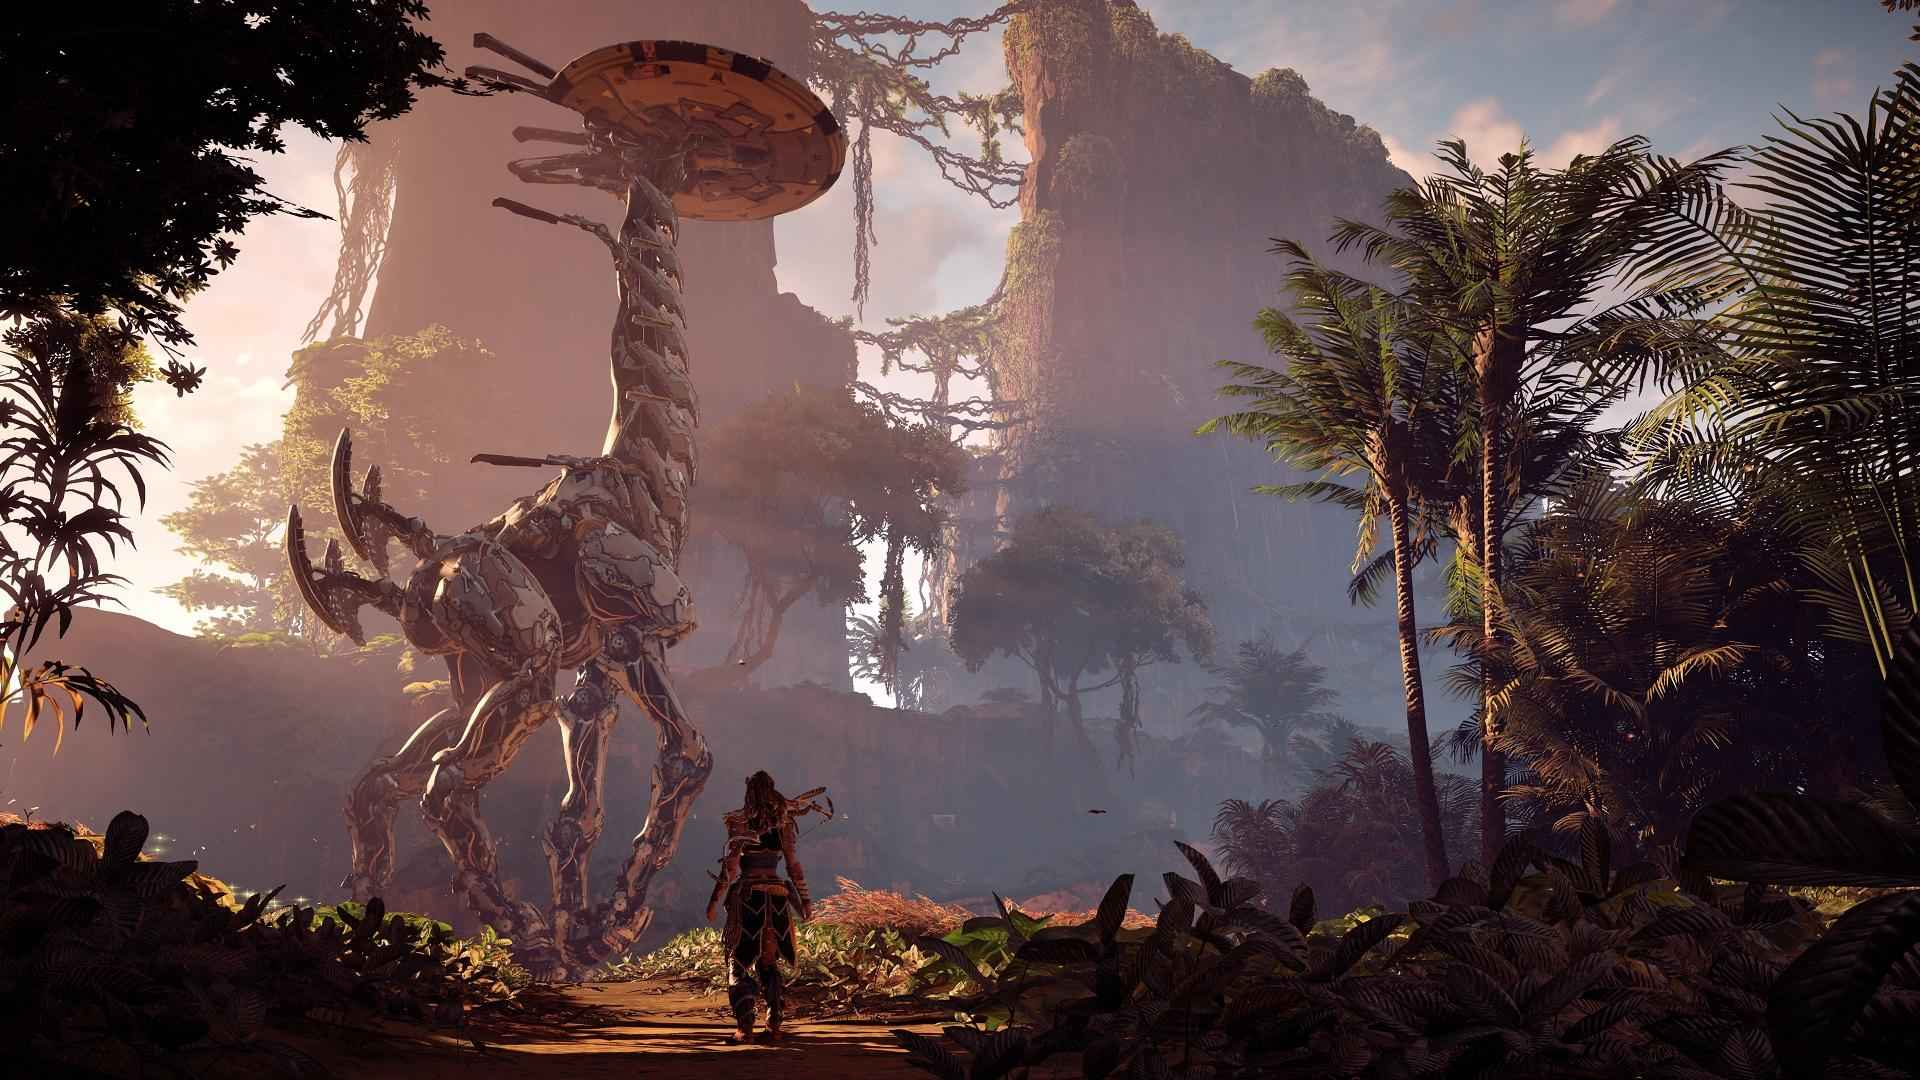 New PS4 Or PS5 Exclusives In The Works By Guerrilla Games